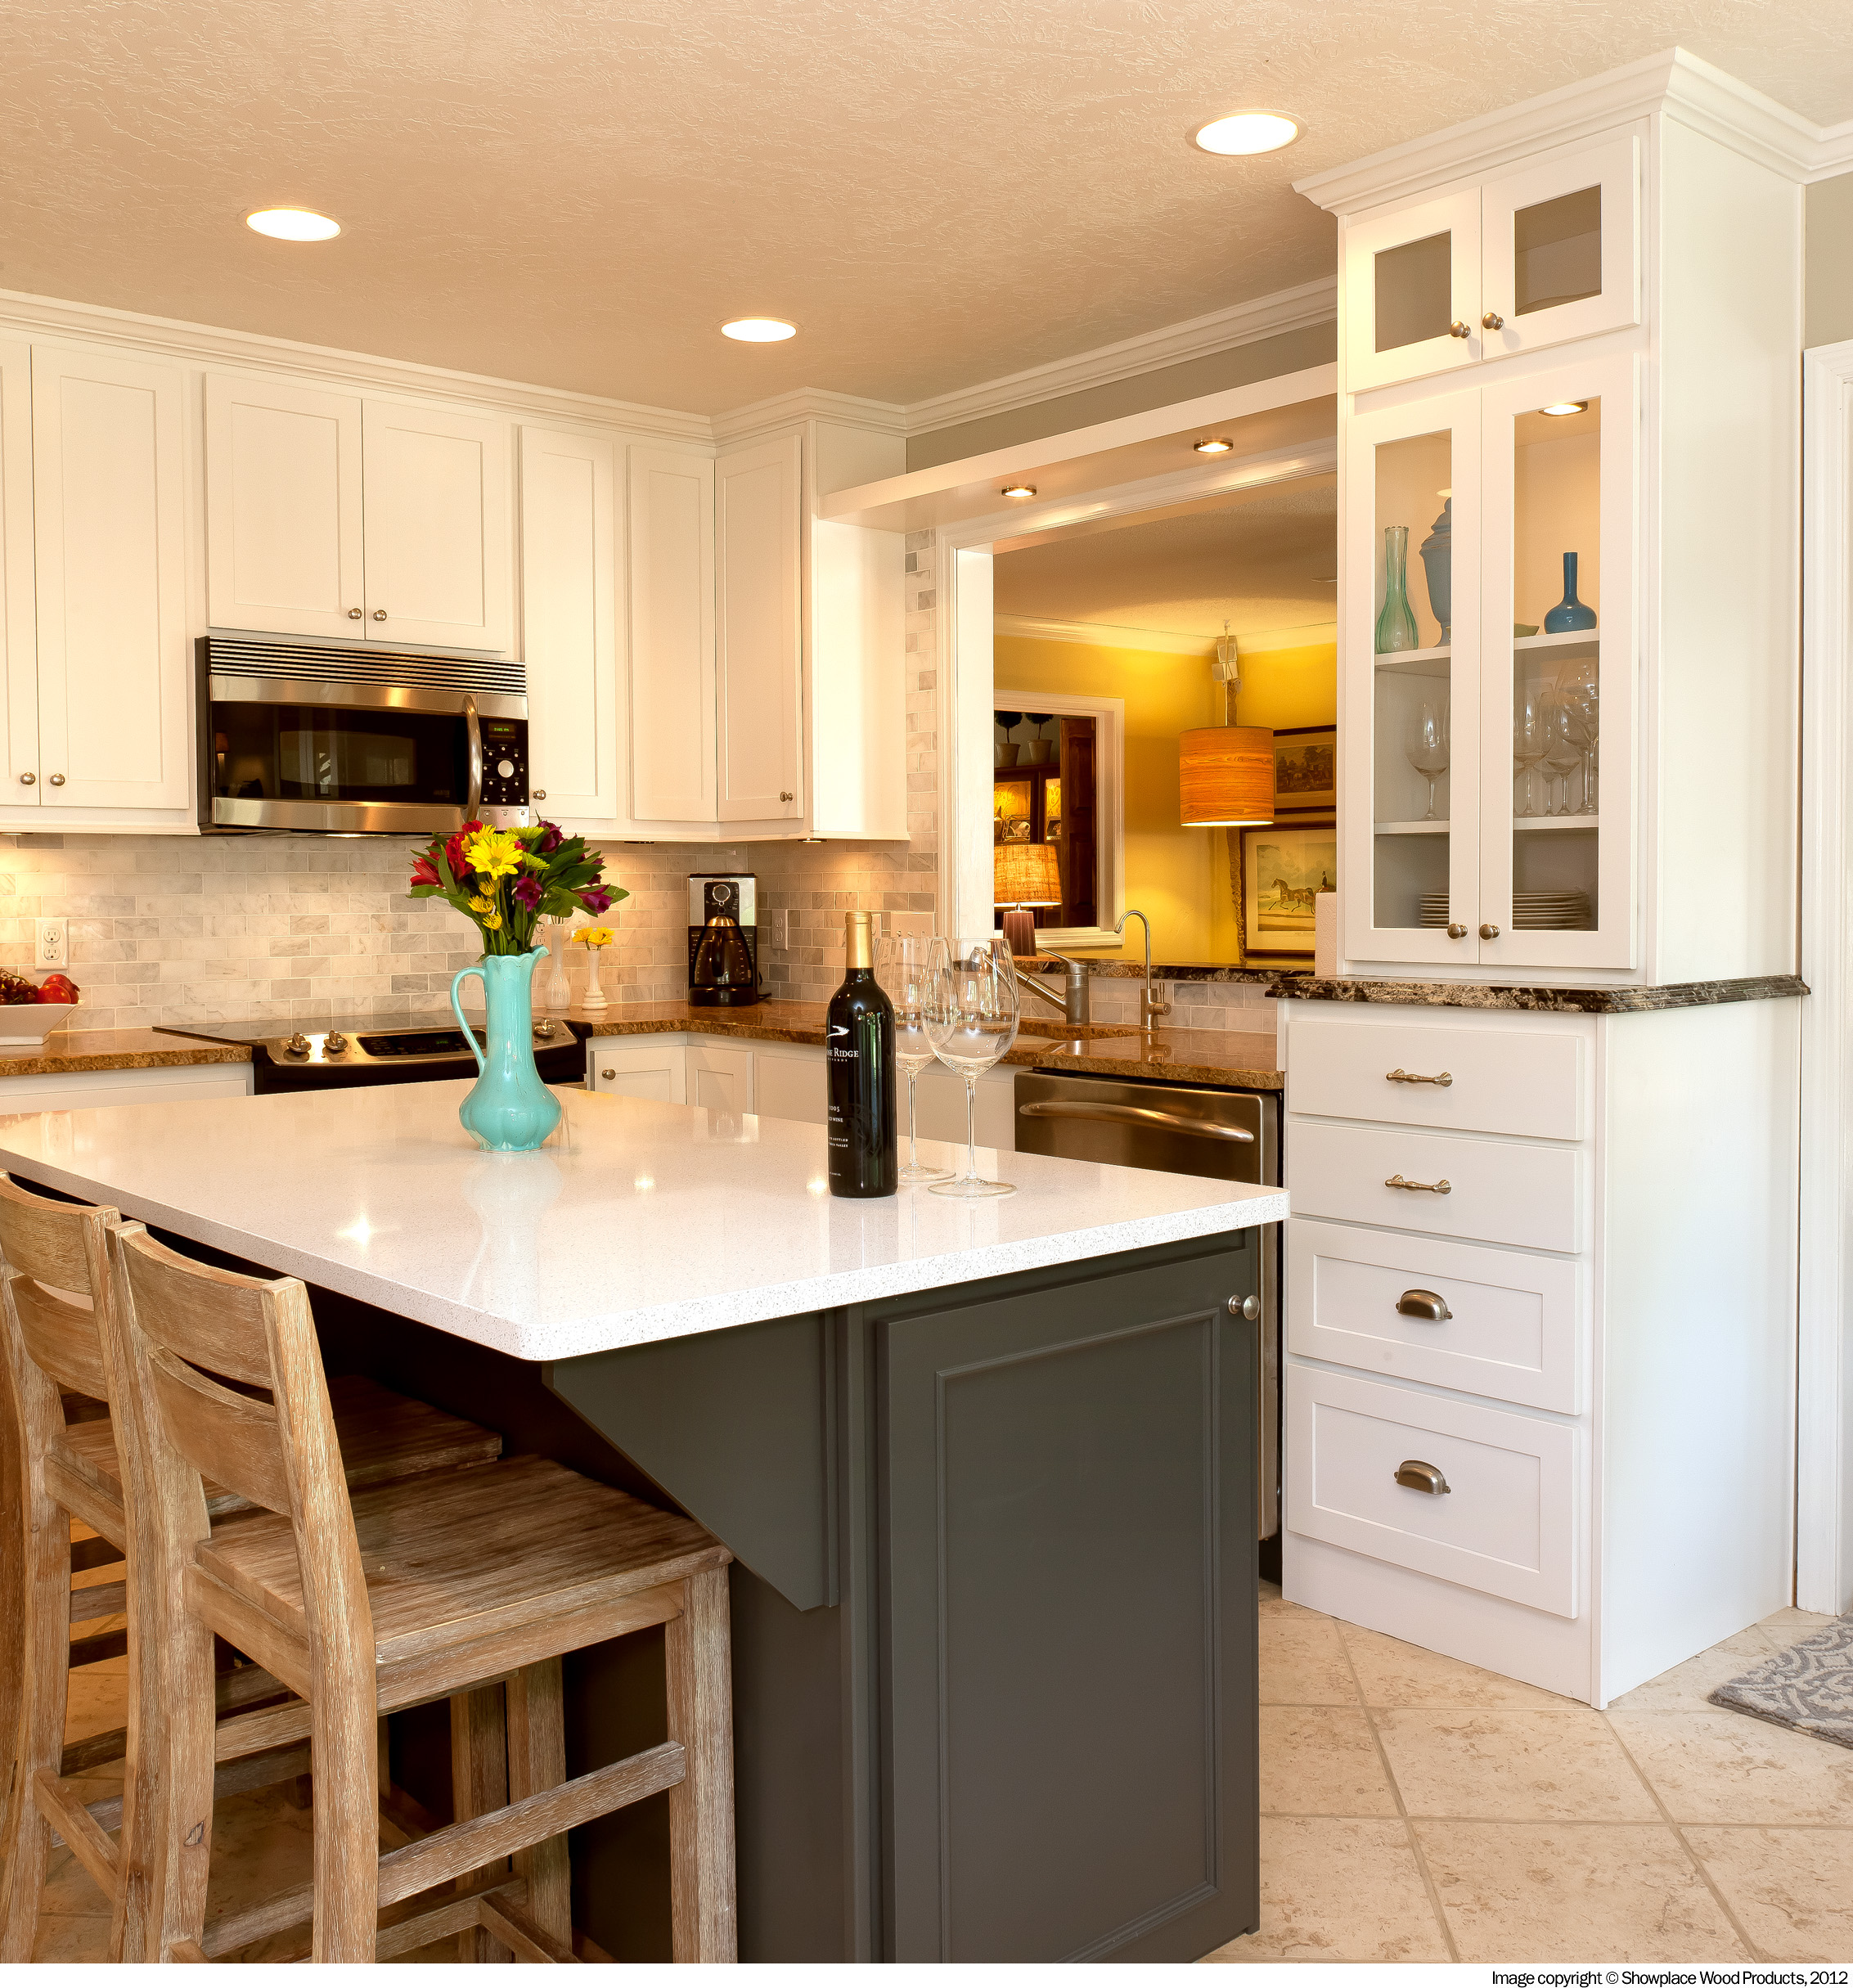 refacing kitchen cabinets before and after washable rugs non skid refinishing springfield il home decor